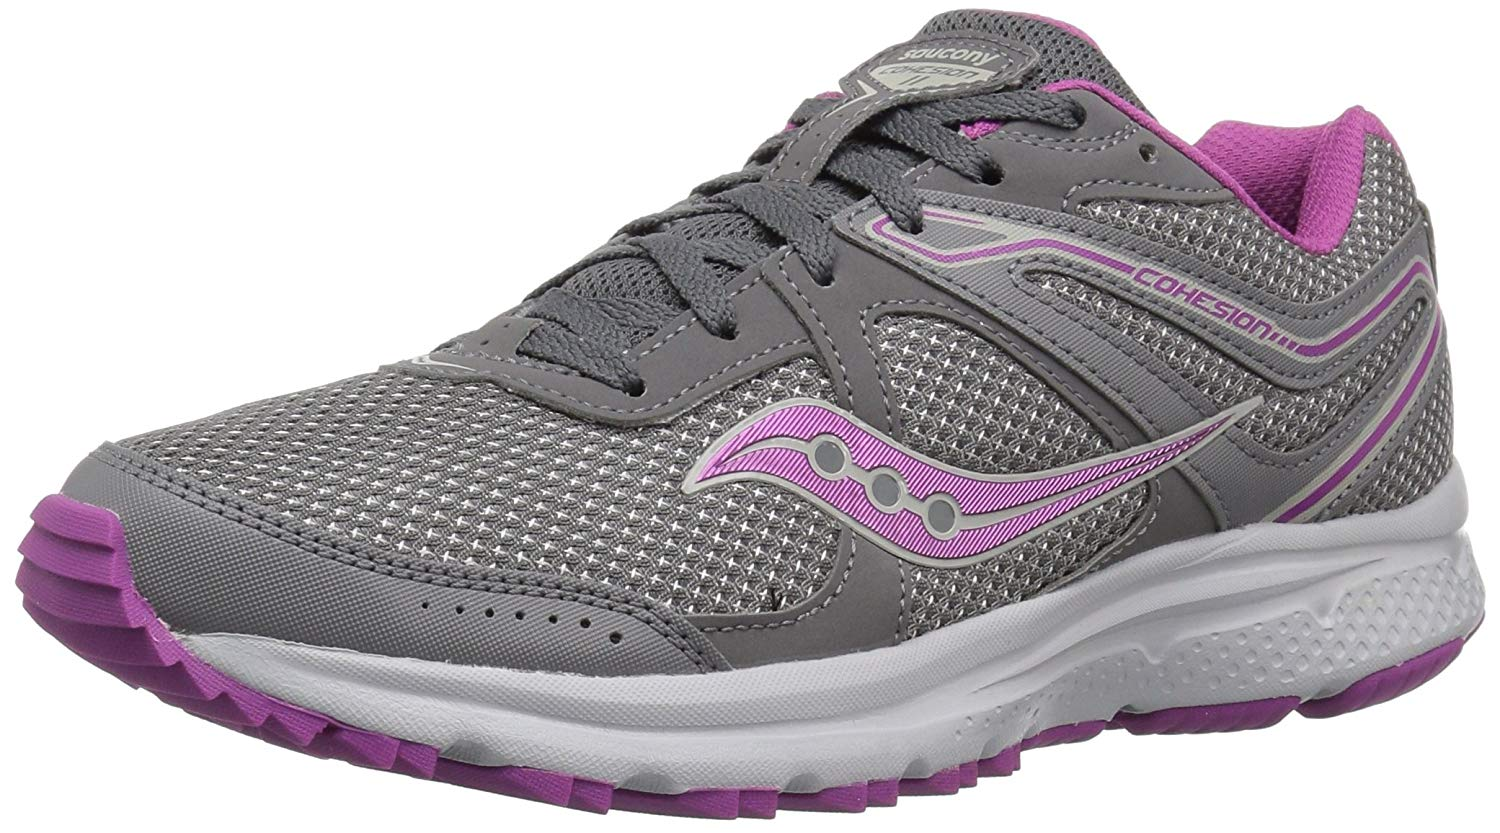 856138a435e6 Get Quotations · Saucony Women s Cohesion TR11 Running Shoe